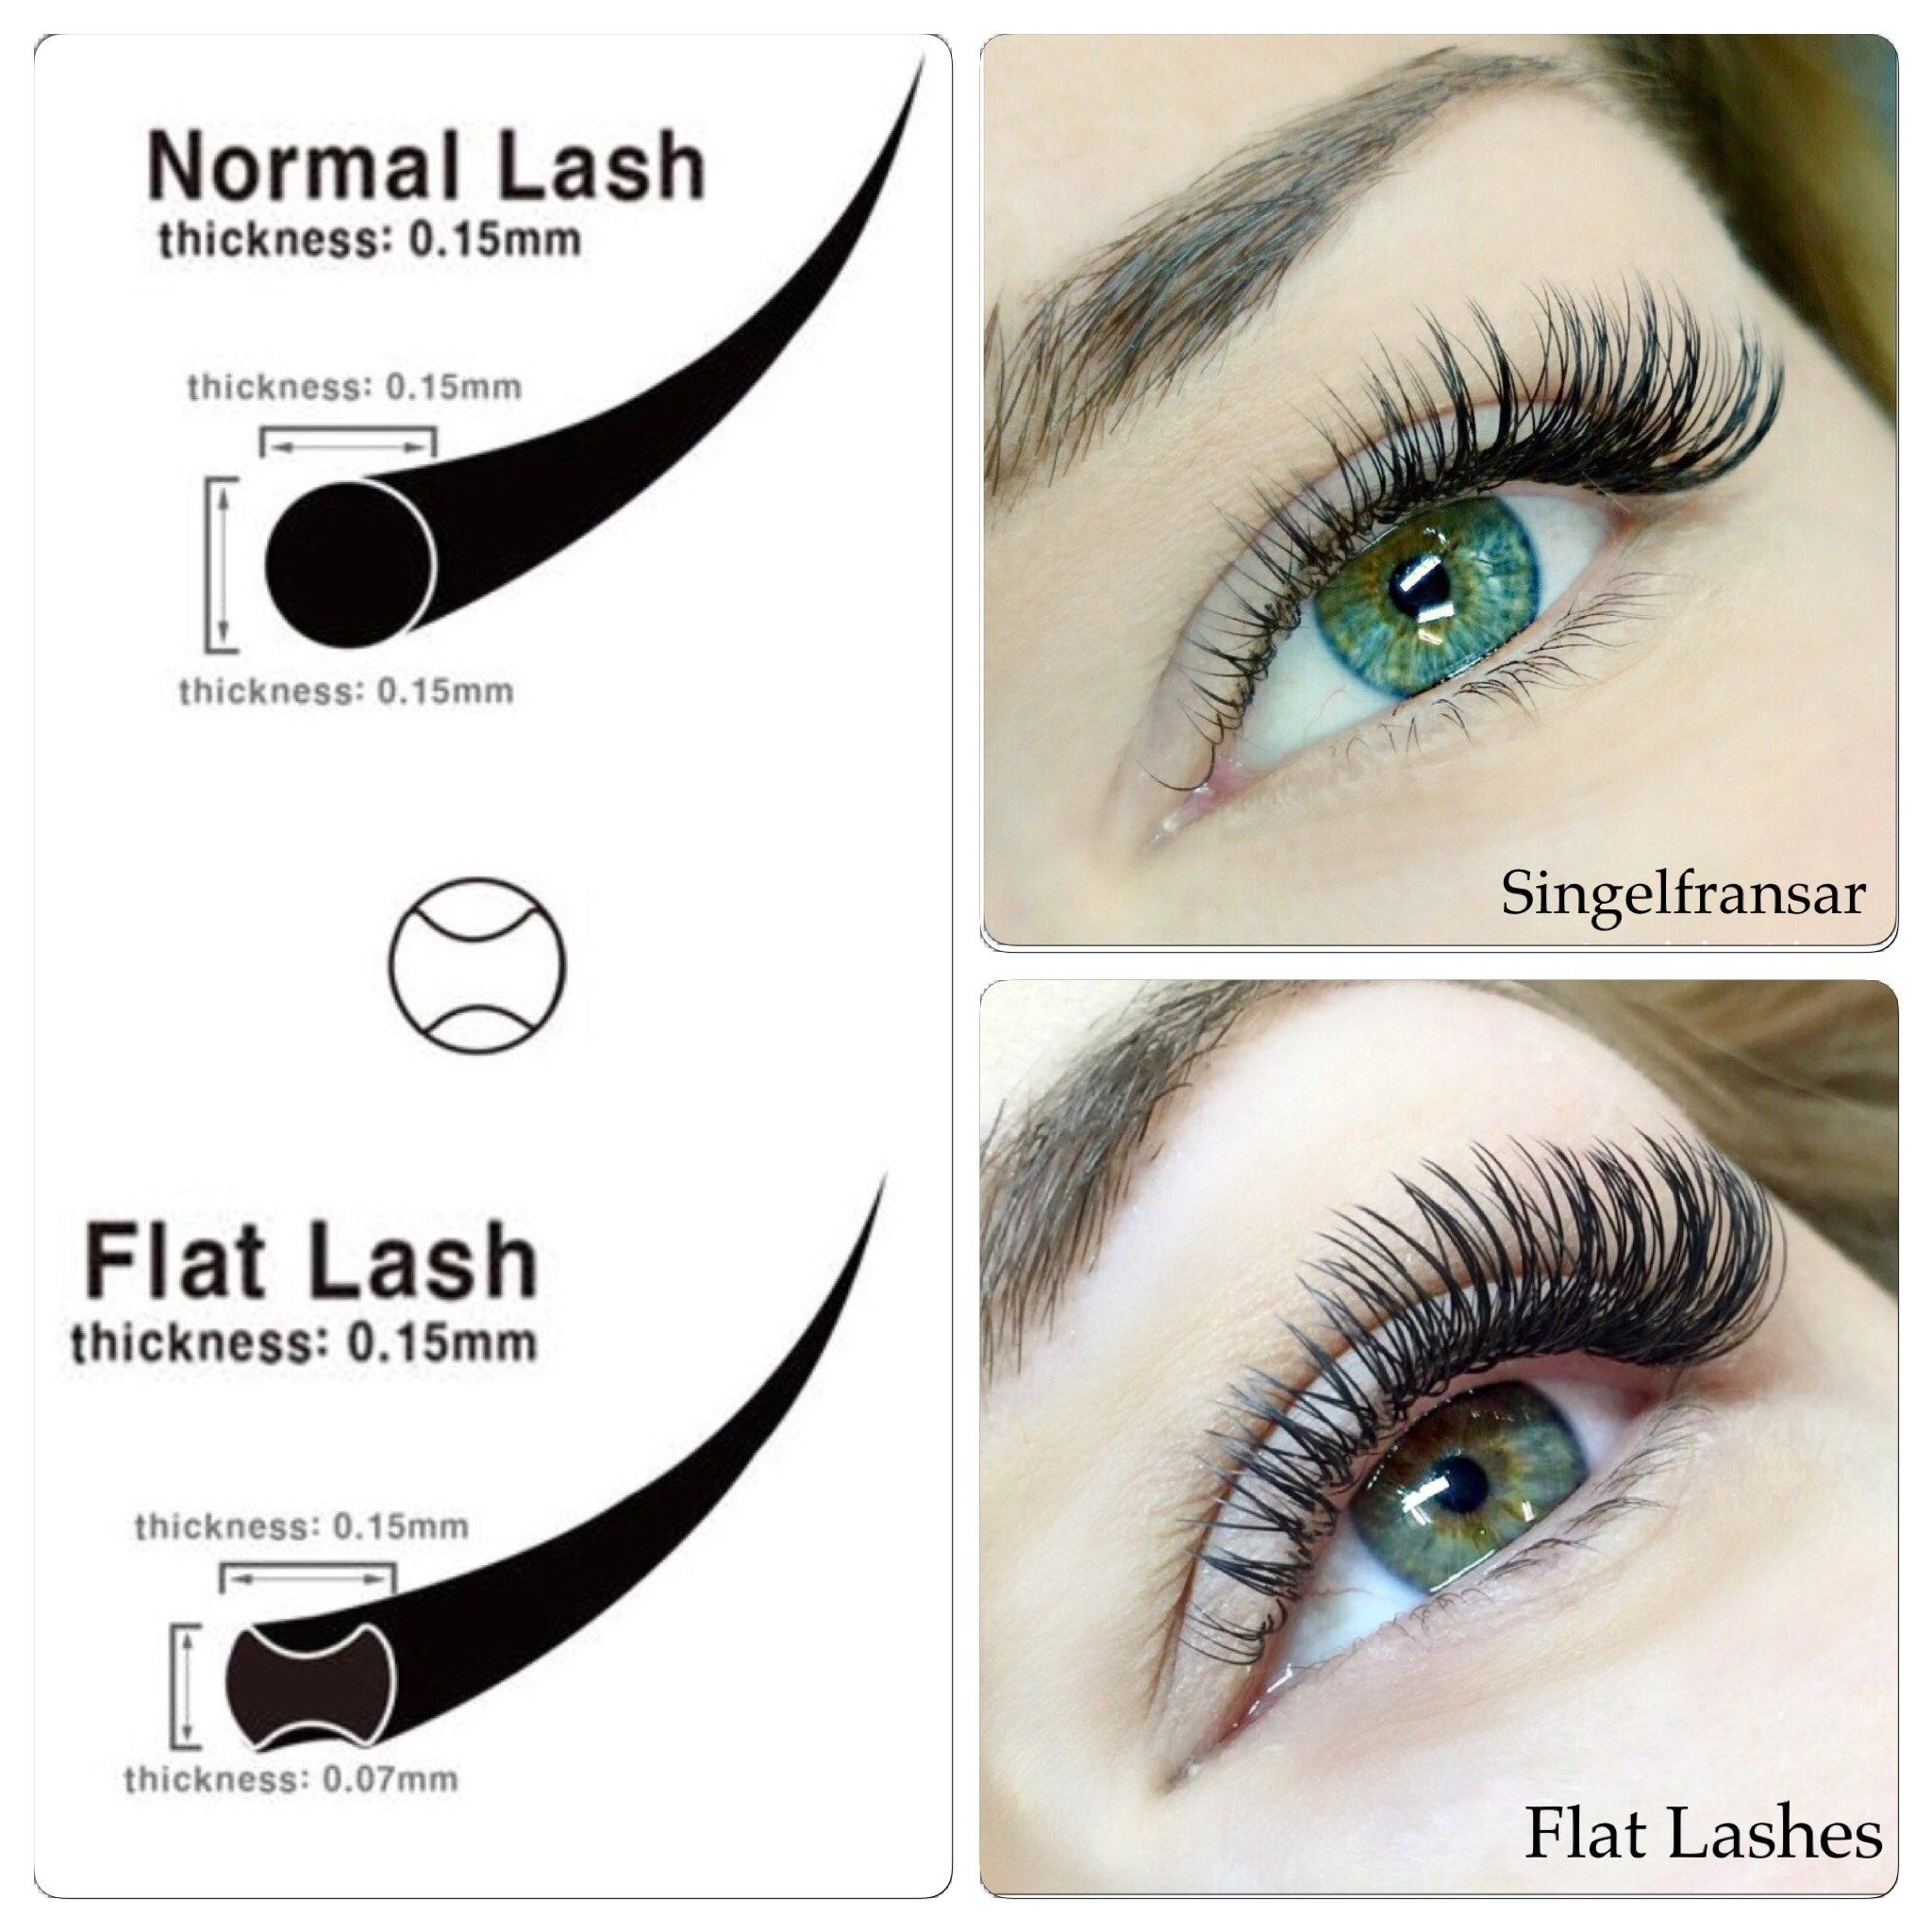 64f4d0237ed Curl Lashes, Silk Lashes, Curling Eyelashes, Permanent Eyeliner, Mink Lash  Extensions,